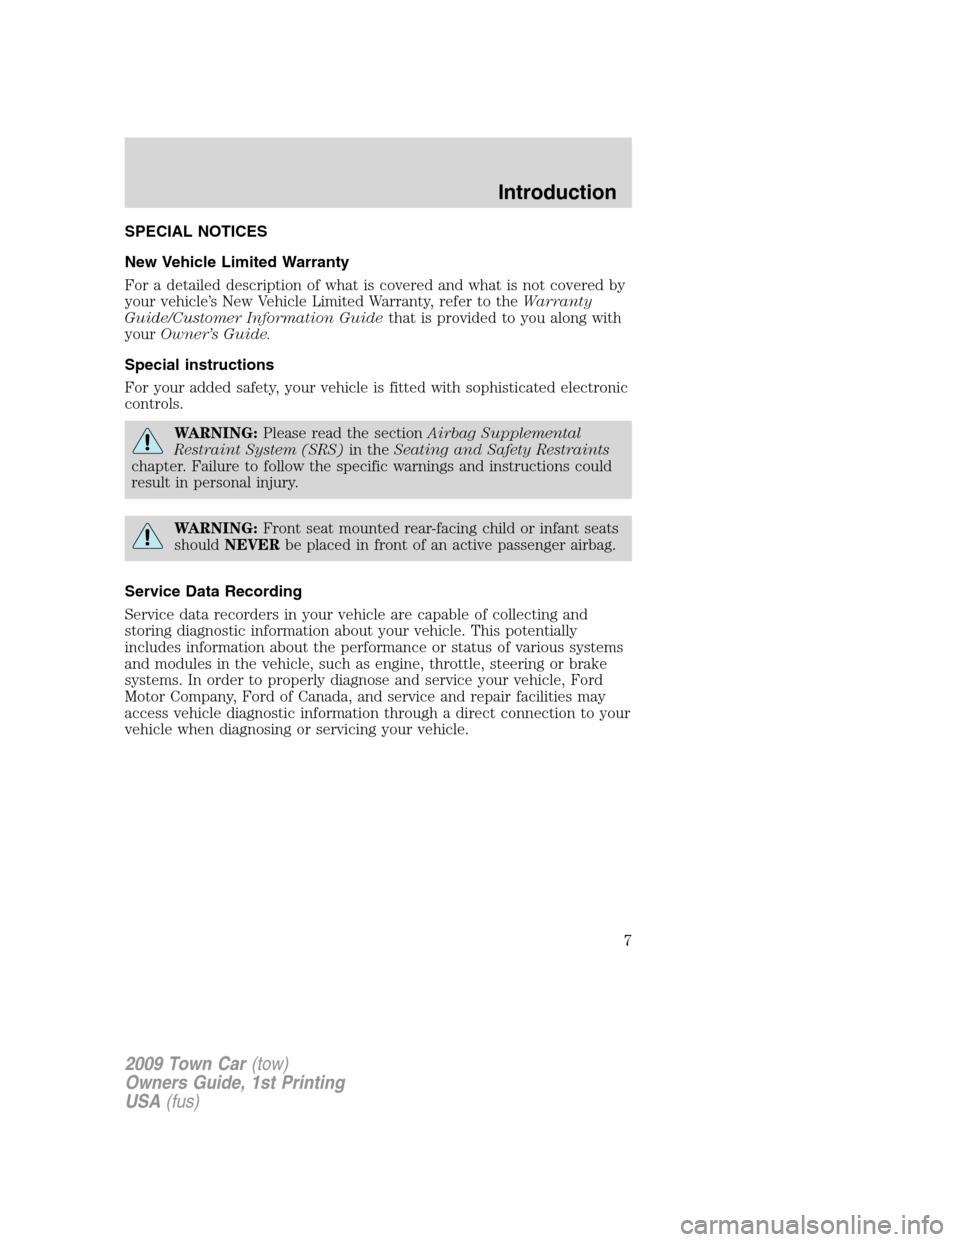 LINCOLN TOWN CAR 2009  Owners Manual, Page 7